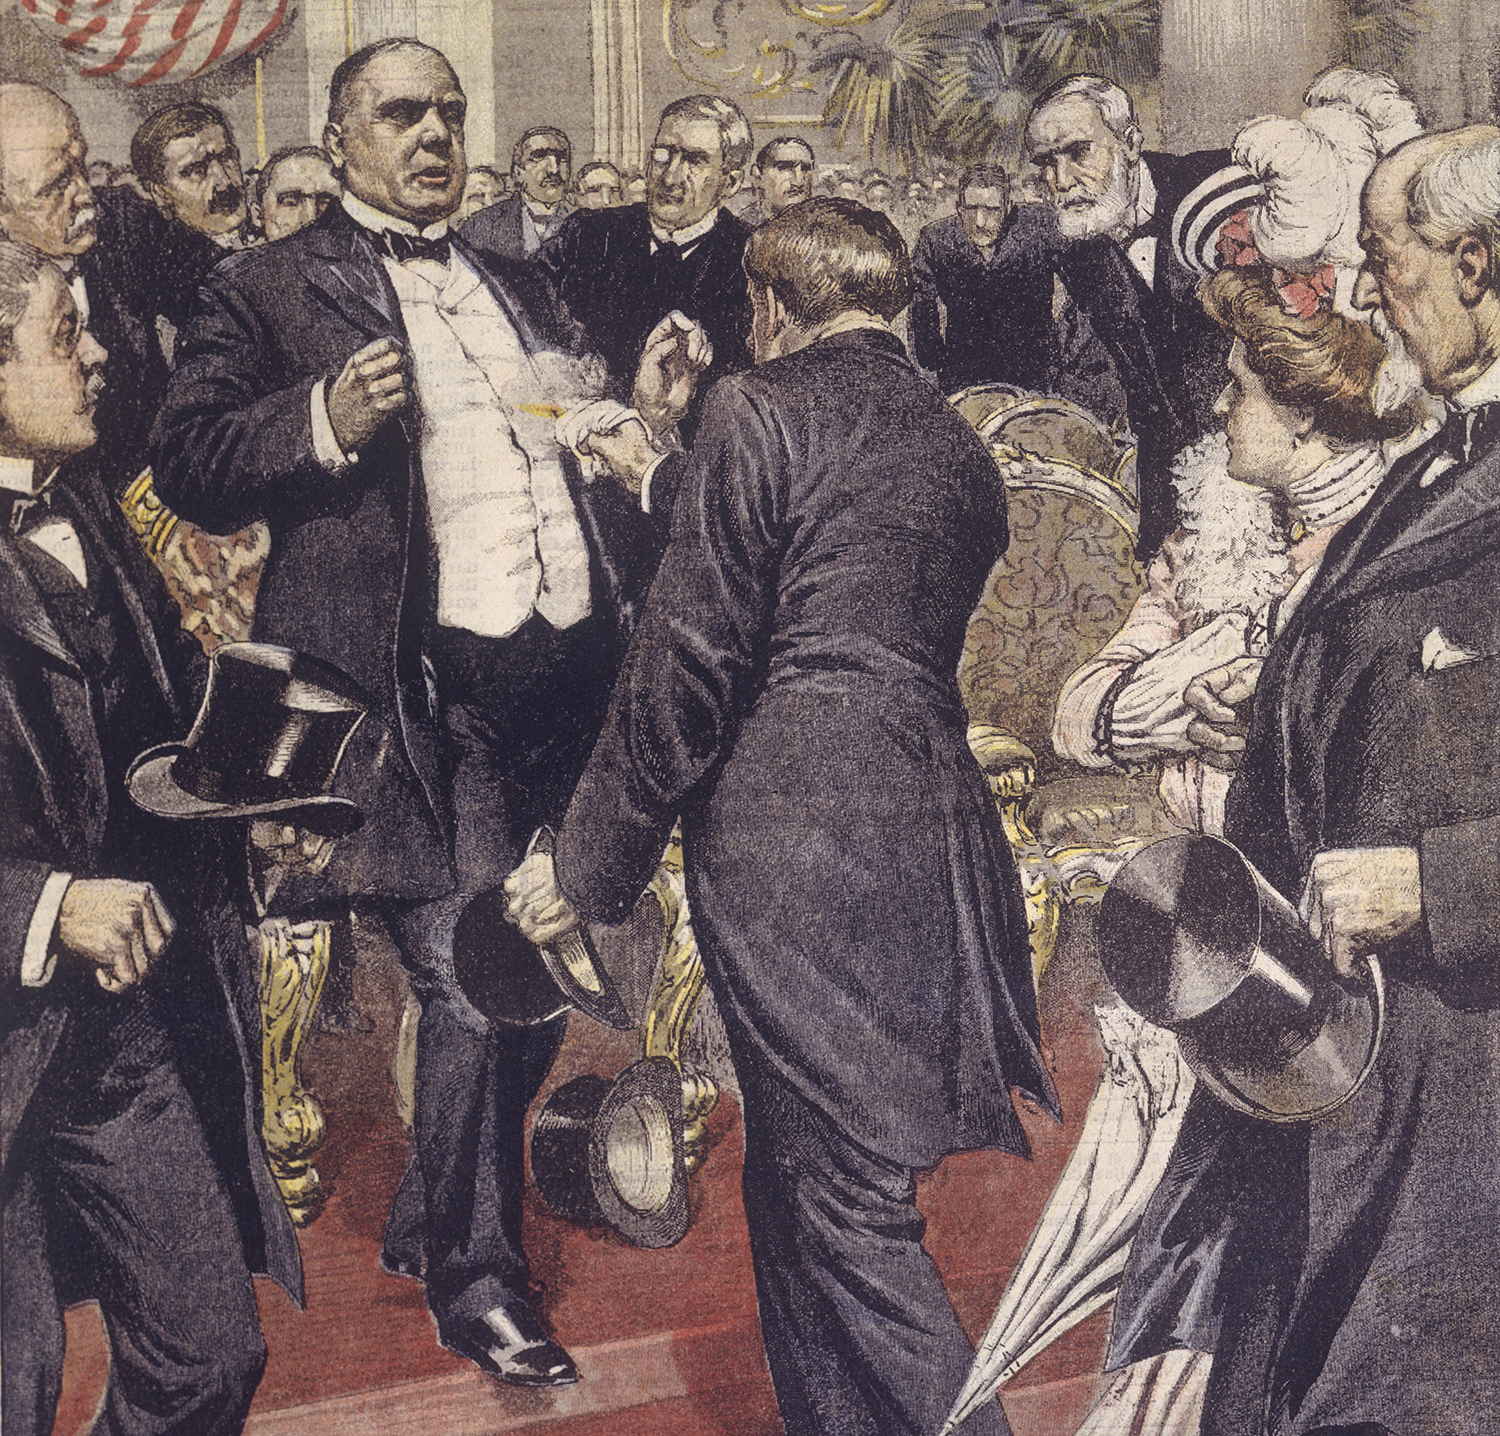 The assassination of President McKinley by the hand of an anarchist at the Exposition in Buffalo, NY. (Credit: DEA/A. DAGLI ORTI/De Agostini/Getty Images)